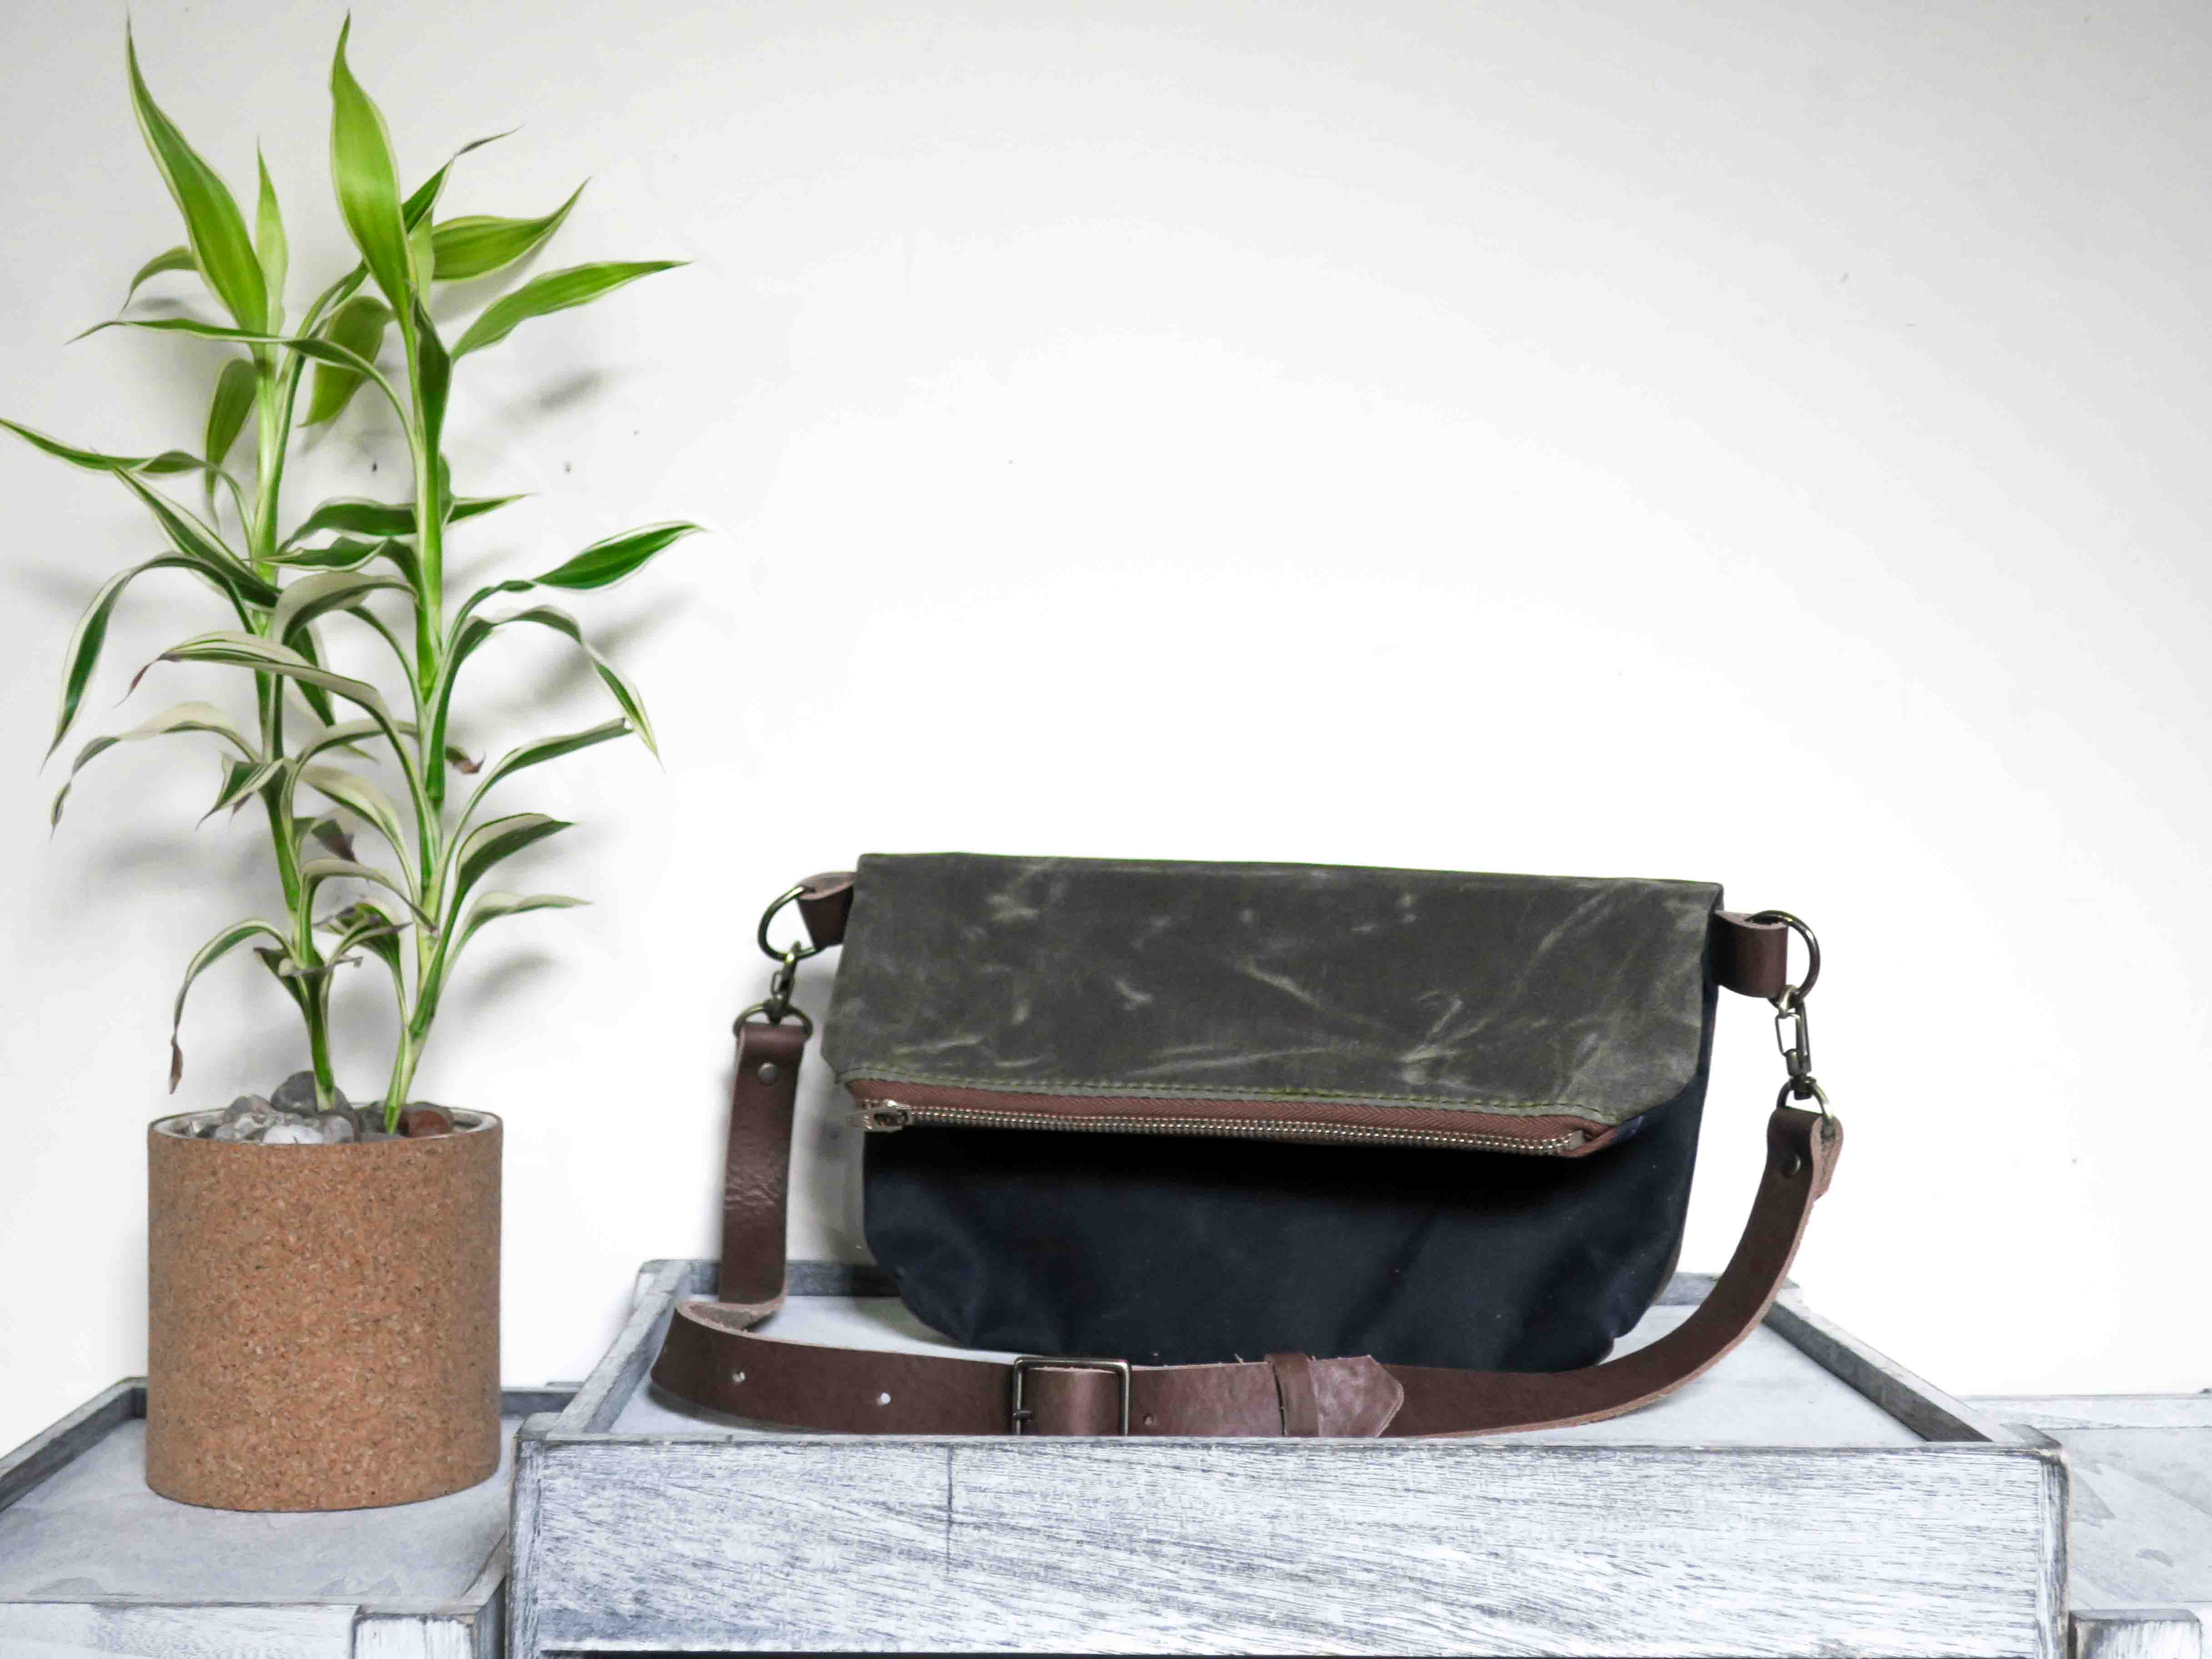 Uphill Designs - Kintla waxed canvas fanny pack / waist bag with strap - navy blue - angled front